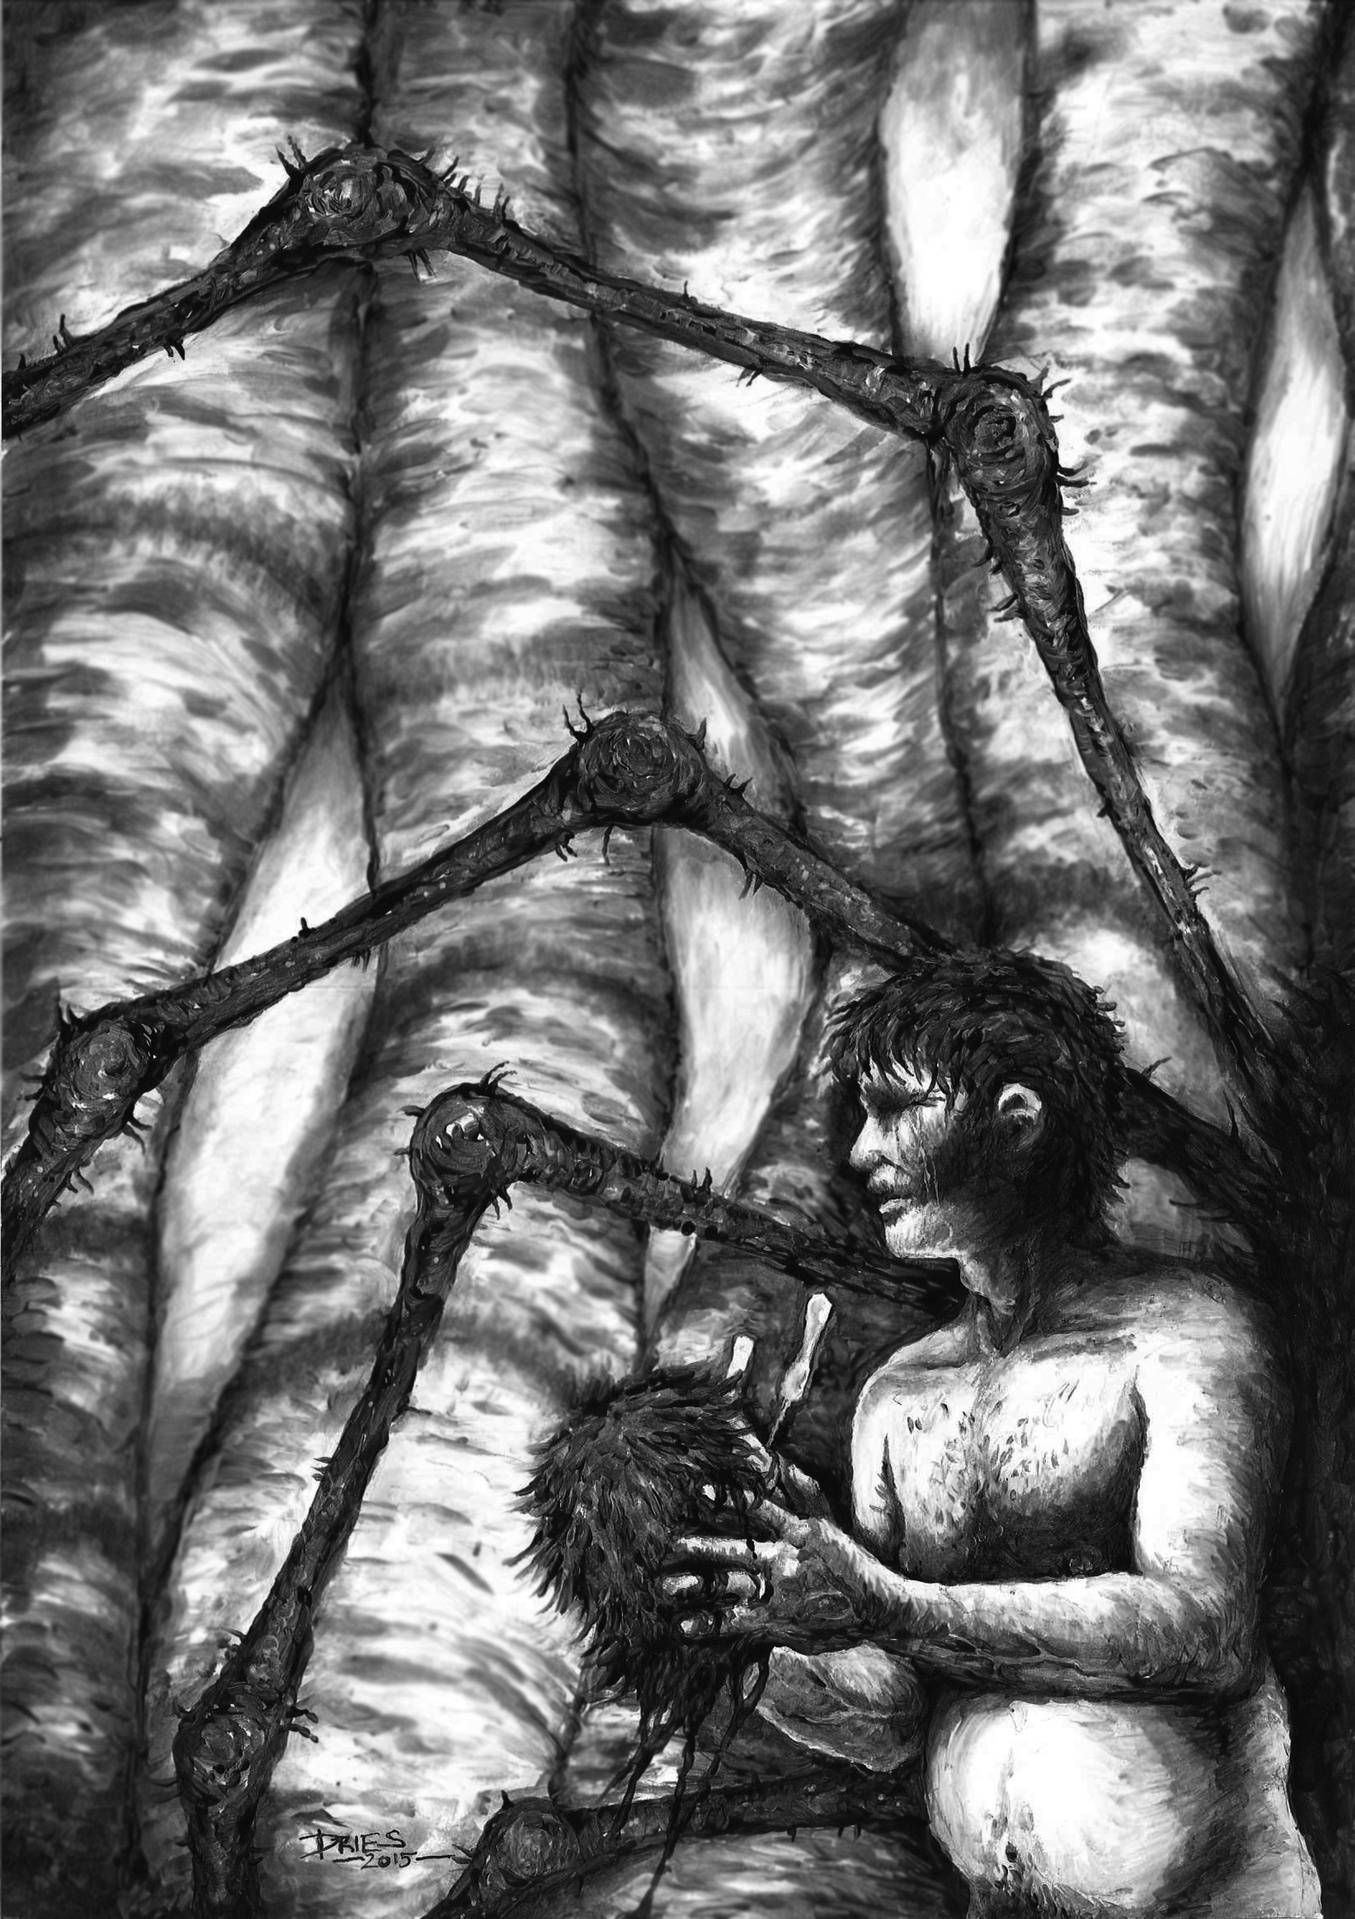 Love Amongst the Red Back Spiders - a story by Aaron Dries